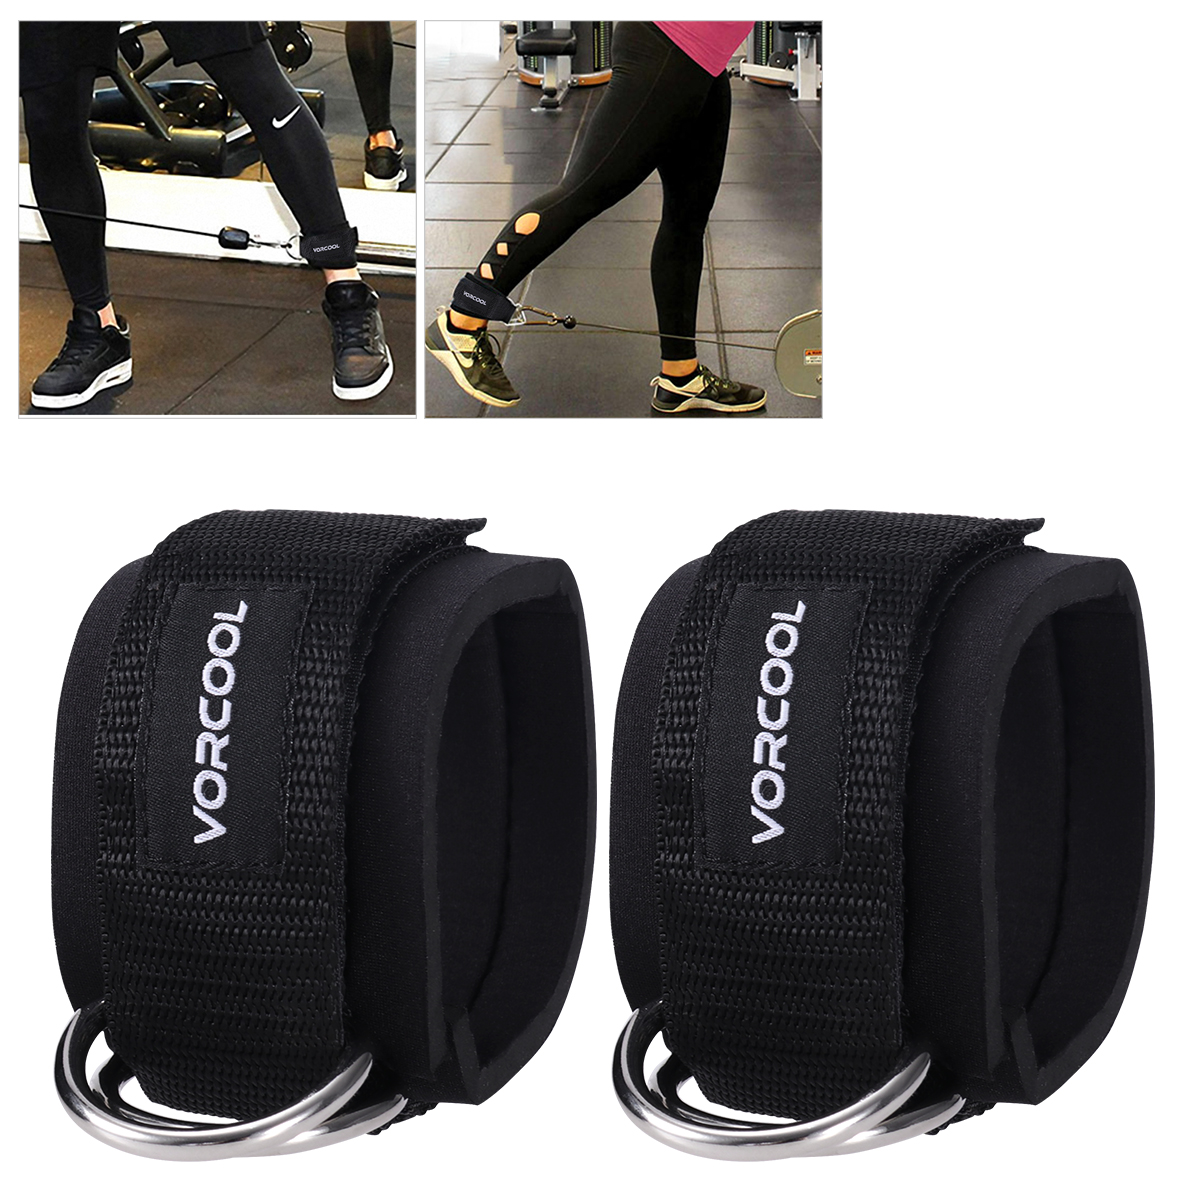 Ankle Support Frank 2pcs Butt Leg Weights Exercises Sport Ankle 24m Strap Padded Adjustable D-ring Ankle Cuffs For Gym Workouts Cable Machines Professional Design